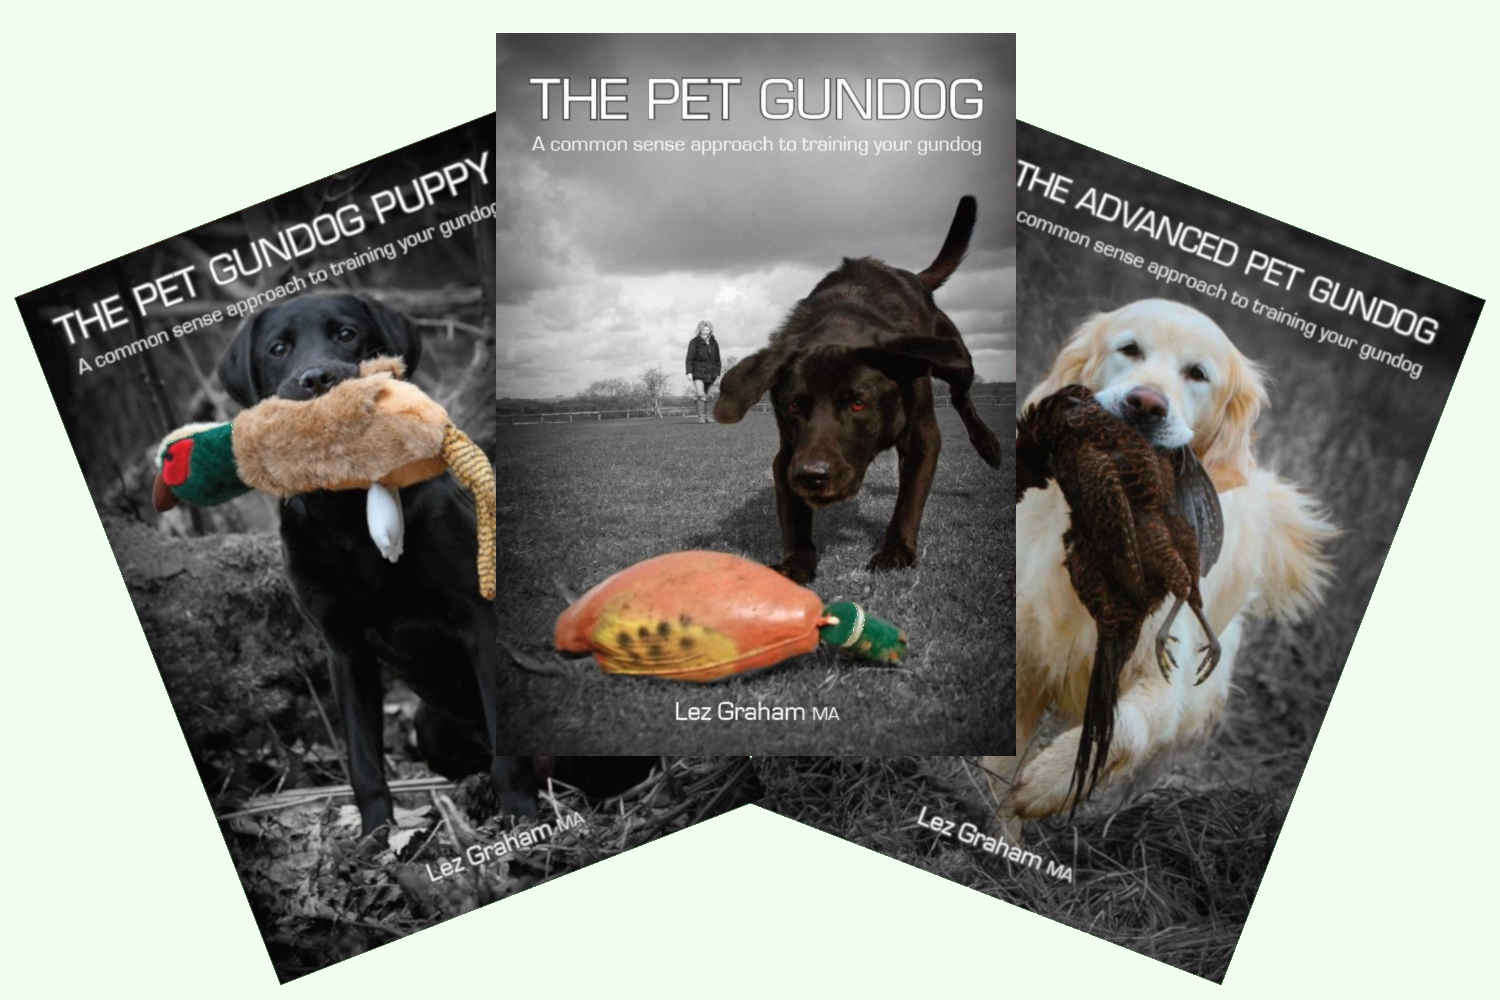 The Pet Gundog book series